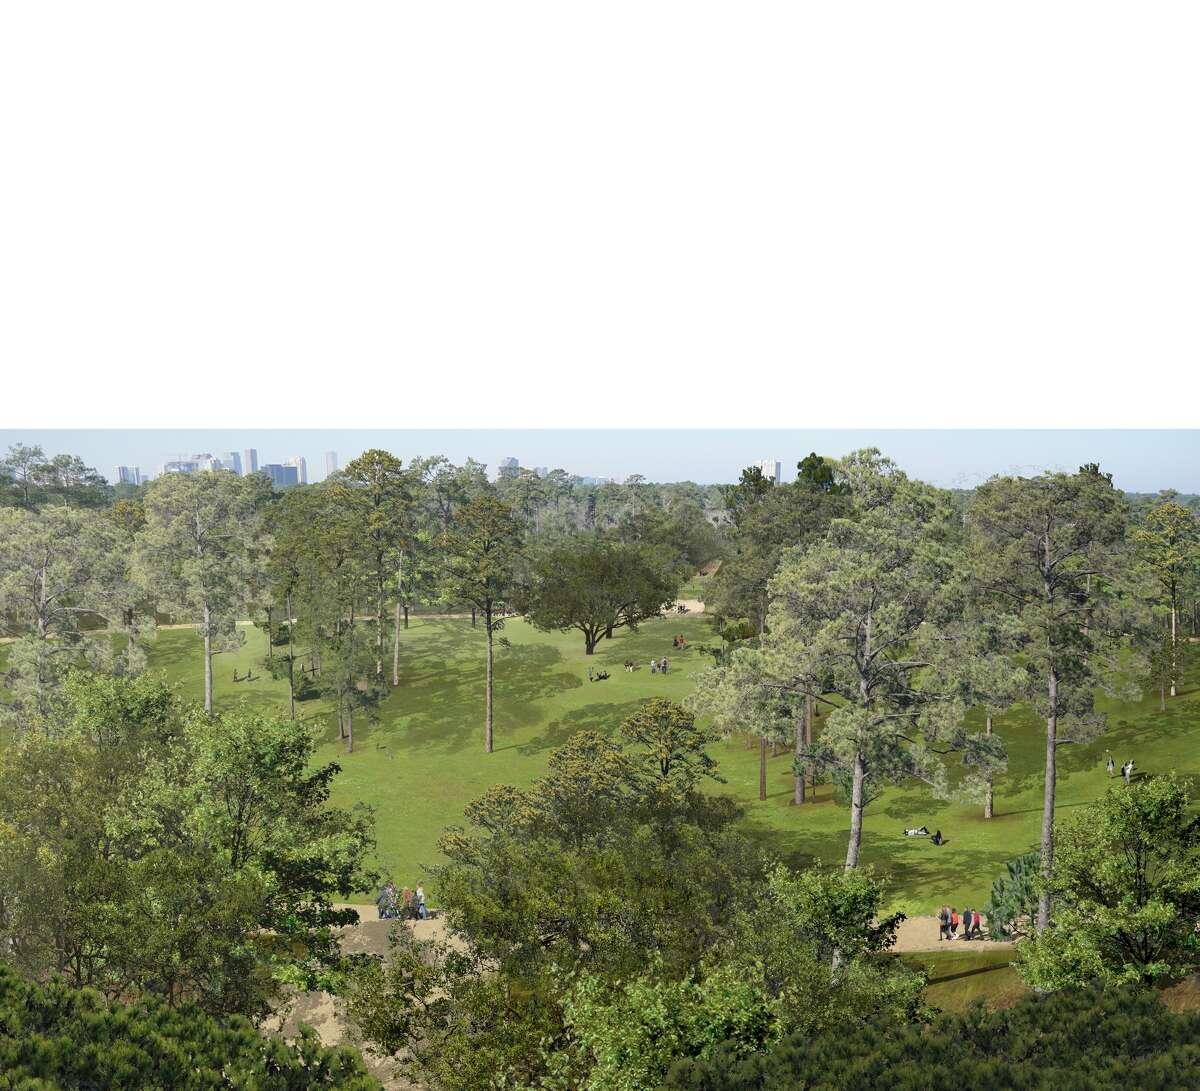 A rendering of the Eastern Glades.